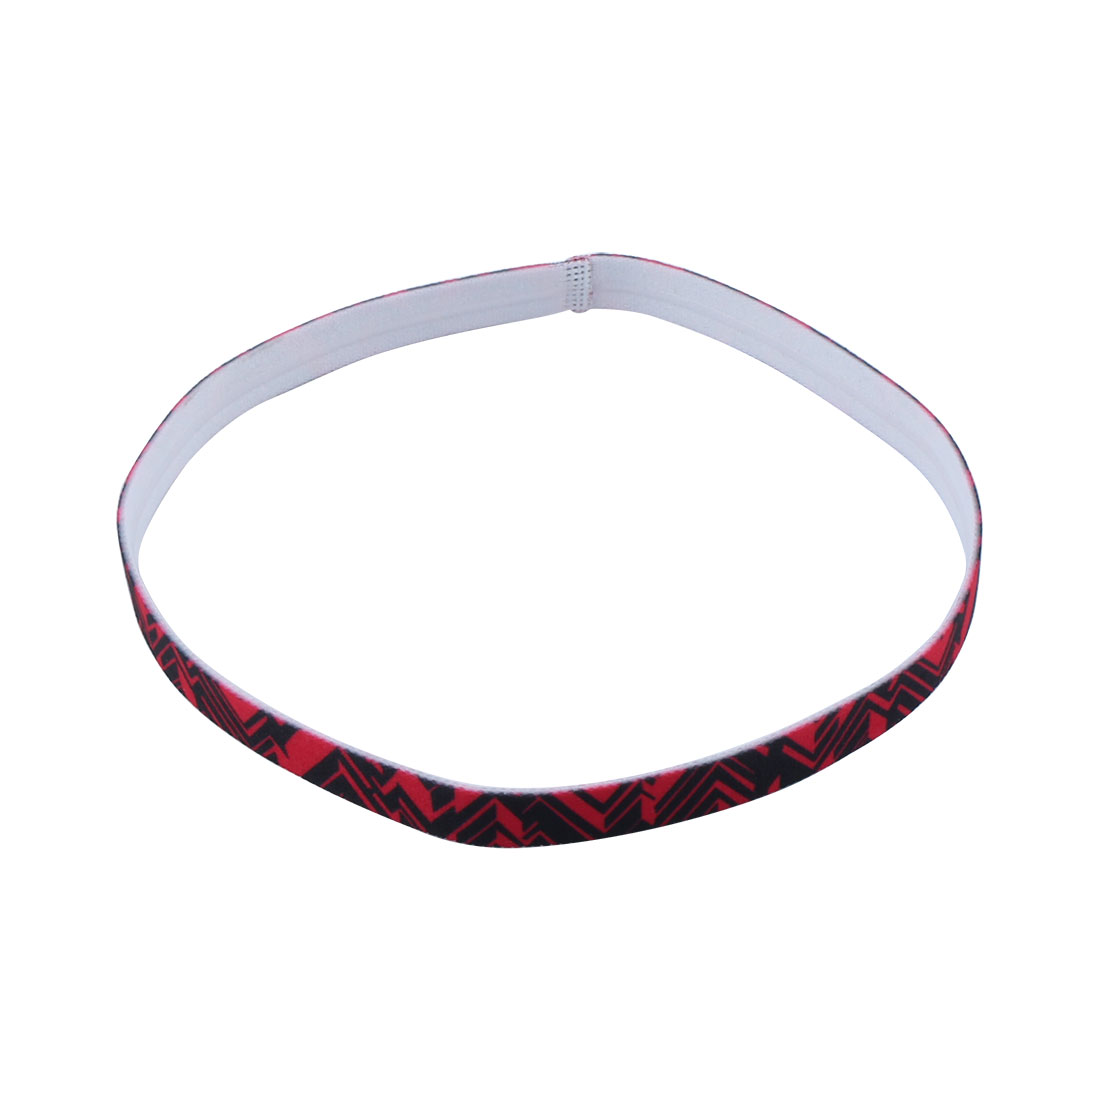 Exercise Silicone Flower Printed Non-slip Strech Sports Headband Red Black